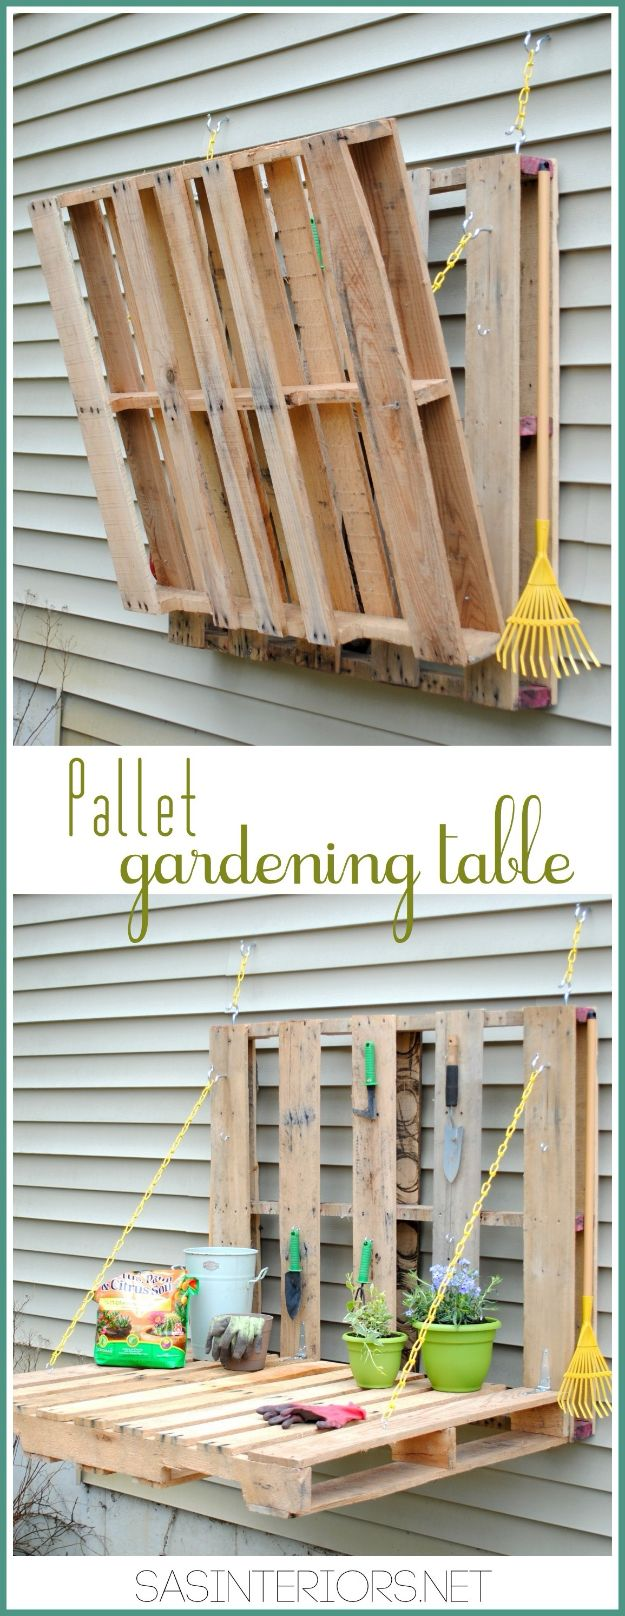 DIY Patio Furniture Ideas - Pallet Gardening Table - Cheap Do It Yourself Porch and Easy Backyard Furniture, Rocking Chairs, Swings, Benches, Stools and Seating Tutorials - Dining Tables from Pallets, Cinder Blocks and Upcyle Ideas - Sectional Couch Plans With Cushions - Makeover Tips for Existing Furniture #diyideas #outdoors #diy #backyardideas #diyfurniture #patio #diyjoy http://diyjoy.com/diy-patio-furniture-ideas